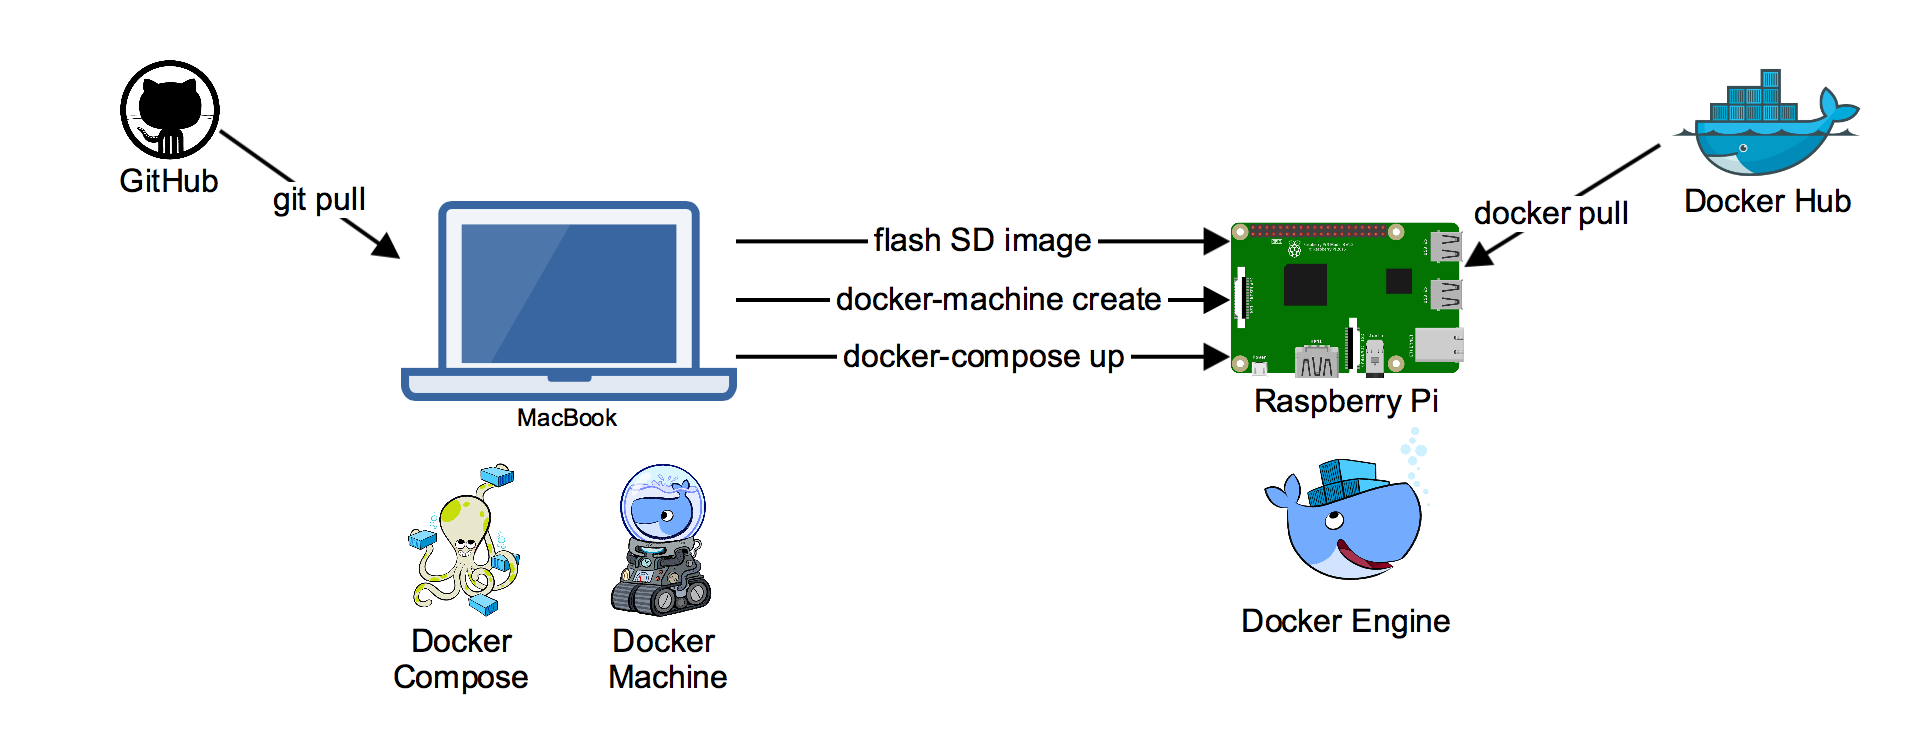 How To Build A Traffic Light Docker Pirates Armed With Explosive Stuff 4 Way Wiring Diagram Developing For Rpi From Mac